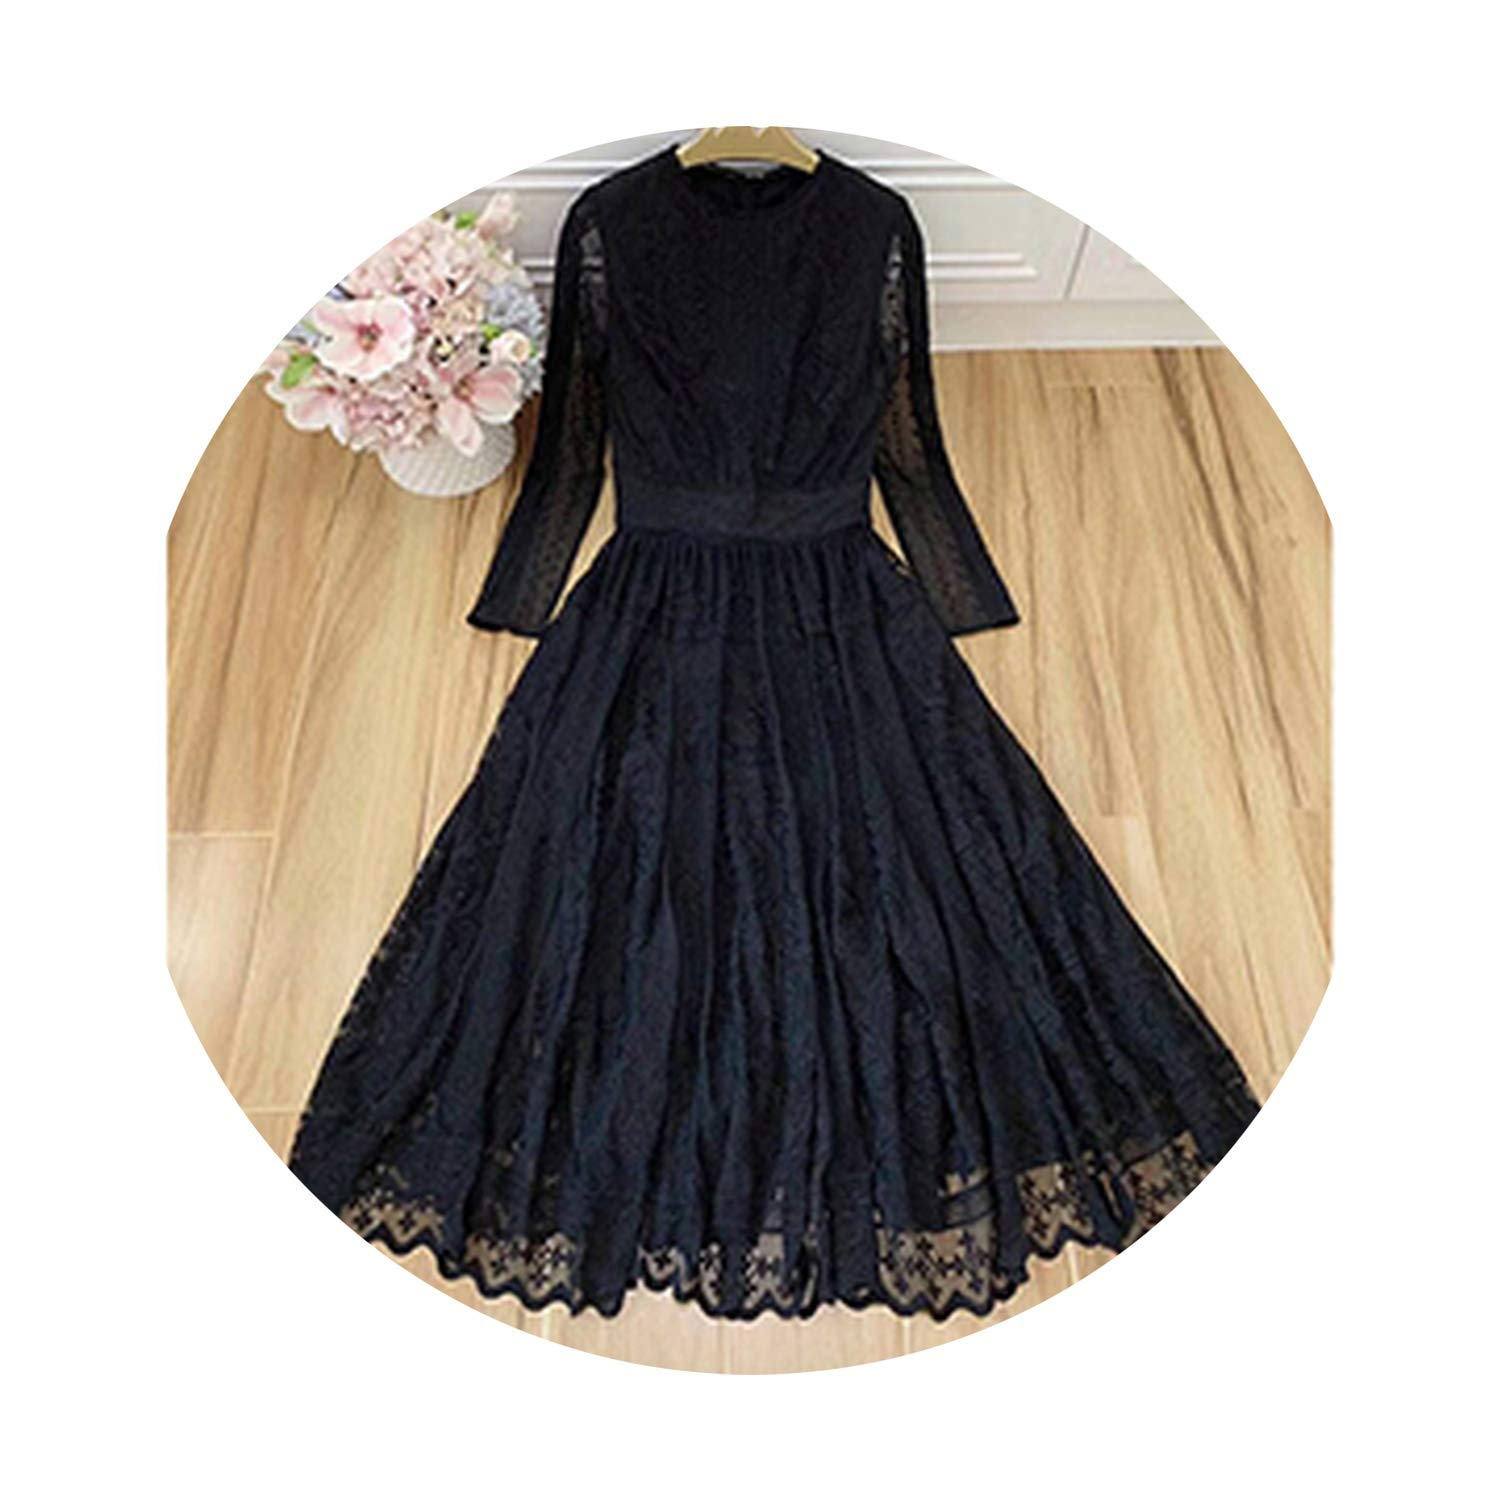 Black Pinkstar Embroidery Mesh Dresses ONeck Hollow Out ONeck Temperament Big Pendulum Dress